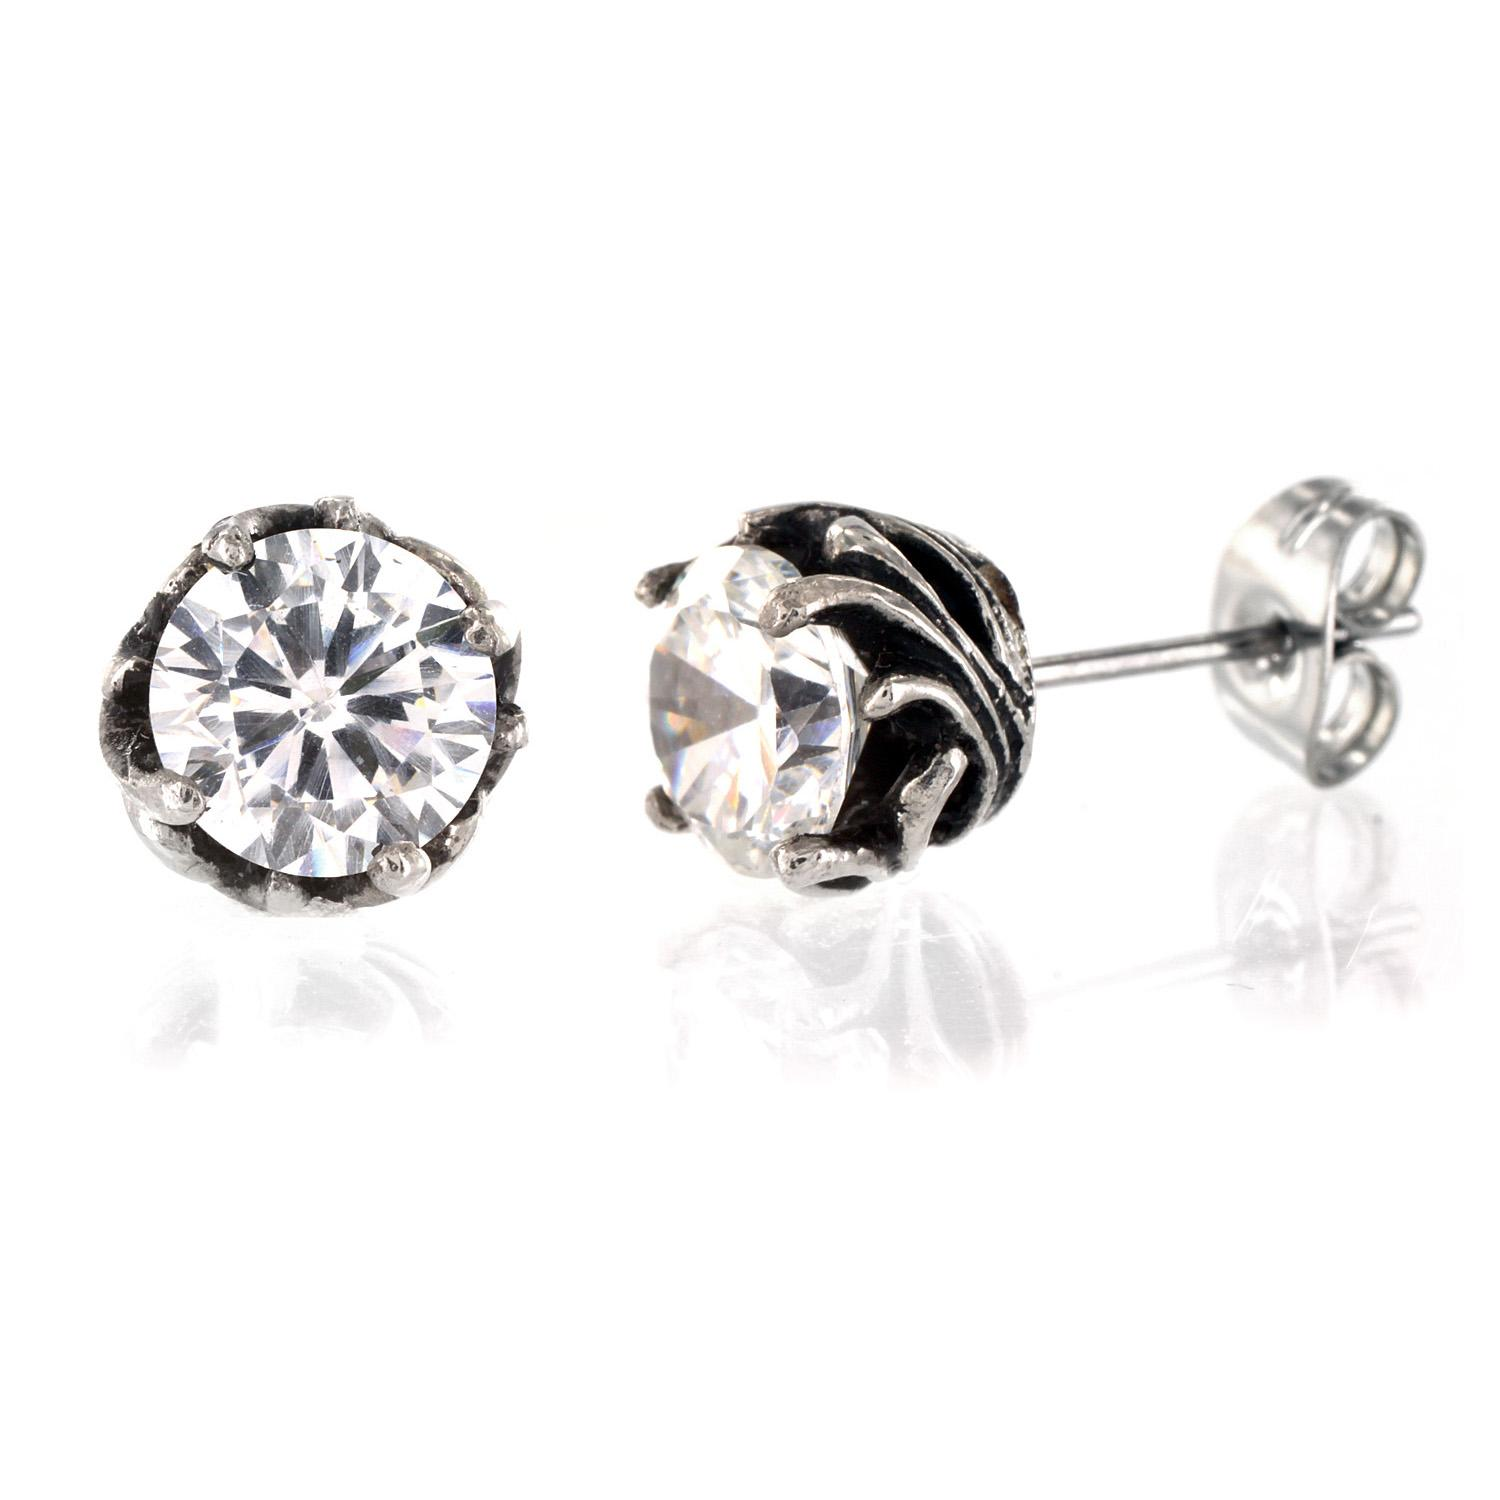 Pair of 316L Surgical Stainless Tribal Vine Prong with Clear CZ Stud Earring